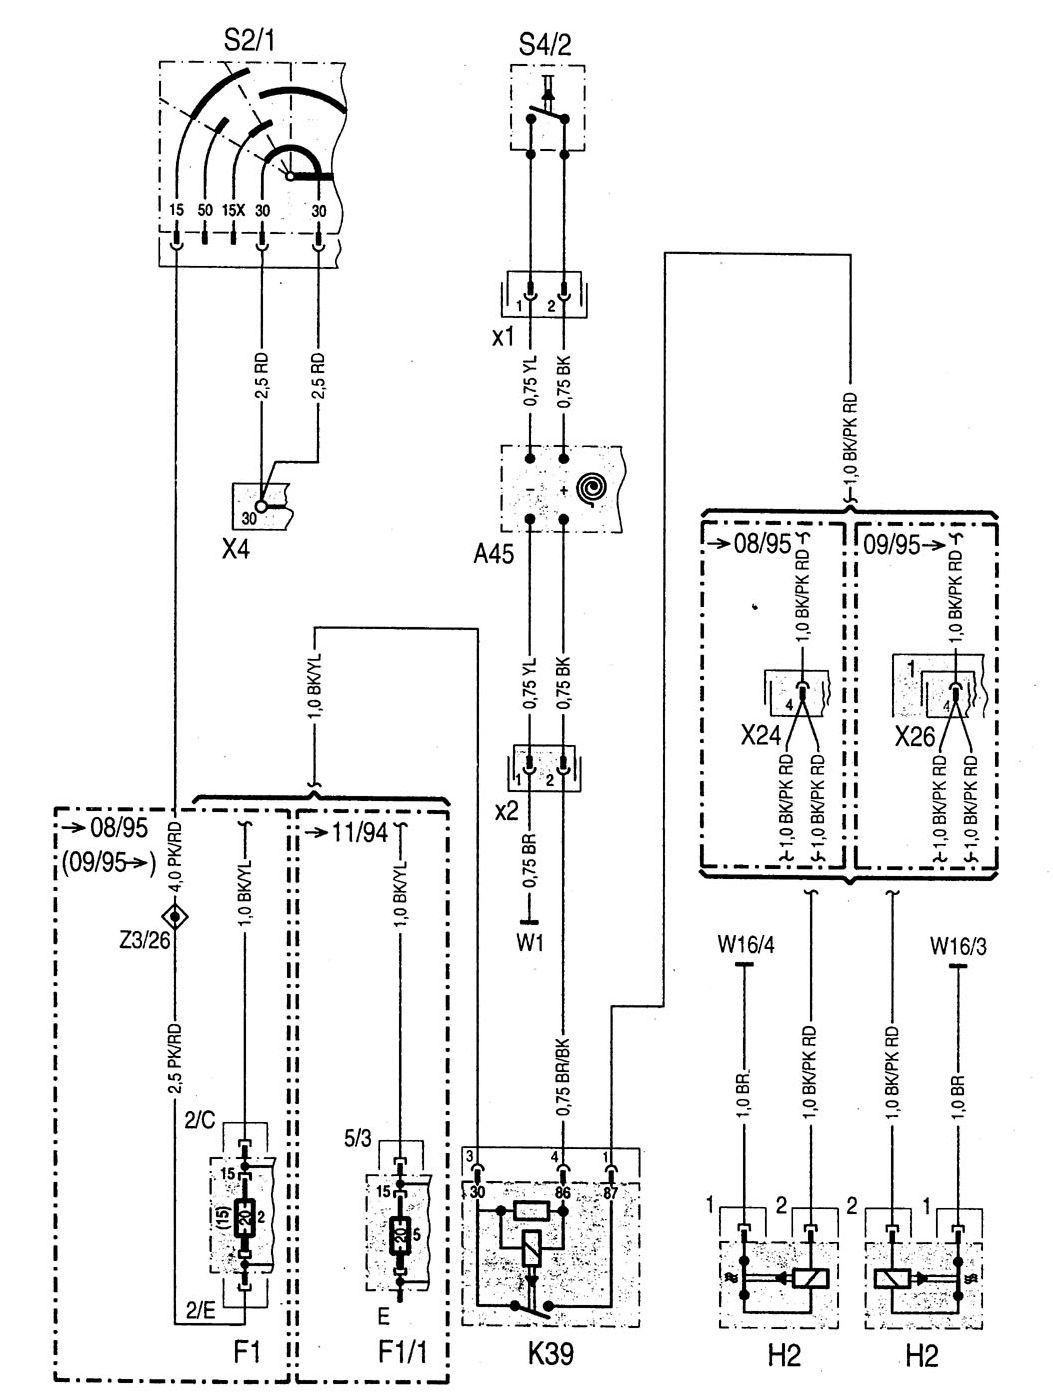 mercedes benz vito wiring diagram mercedes-benz c220 (1994 - 1996) - wiring diagrams - horn ... mercedes benz c220 wiring